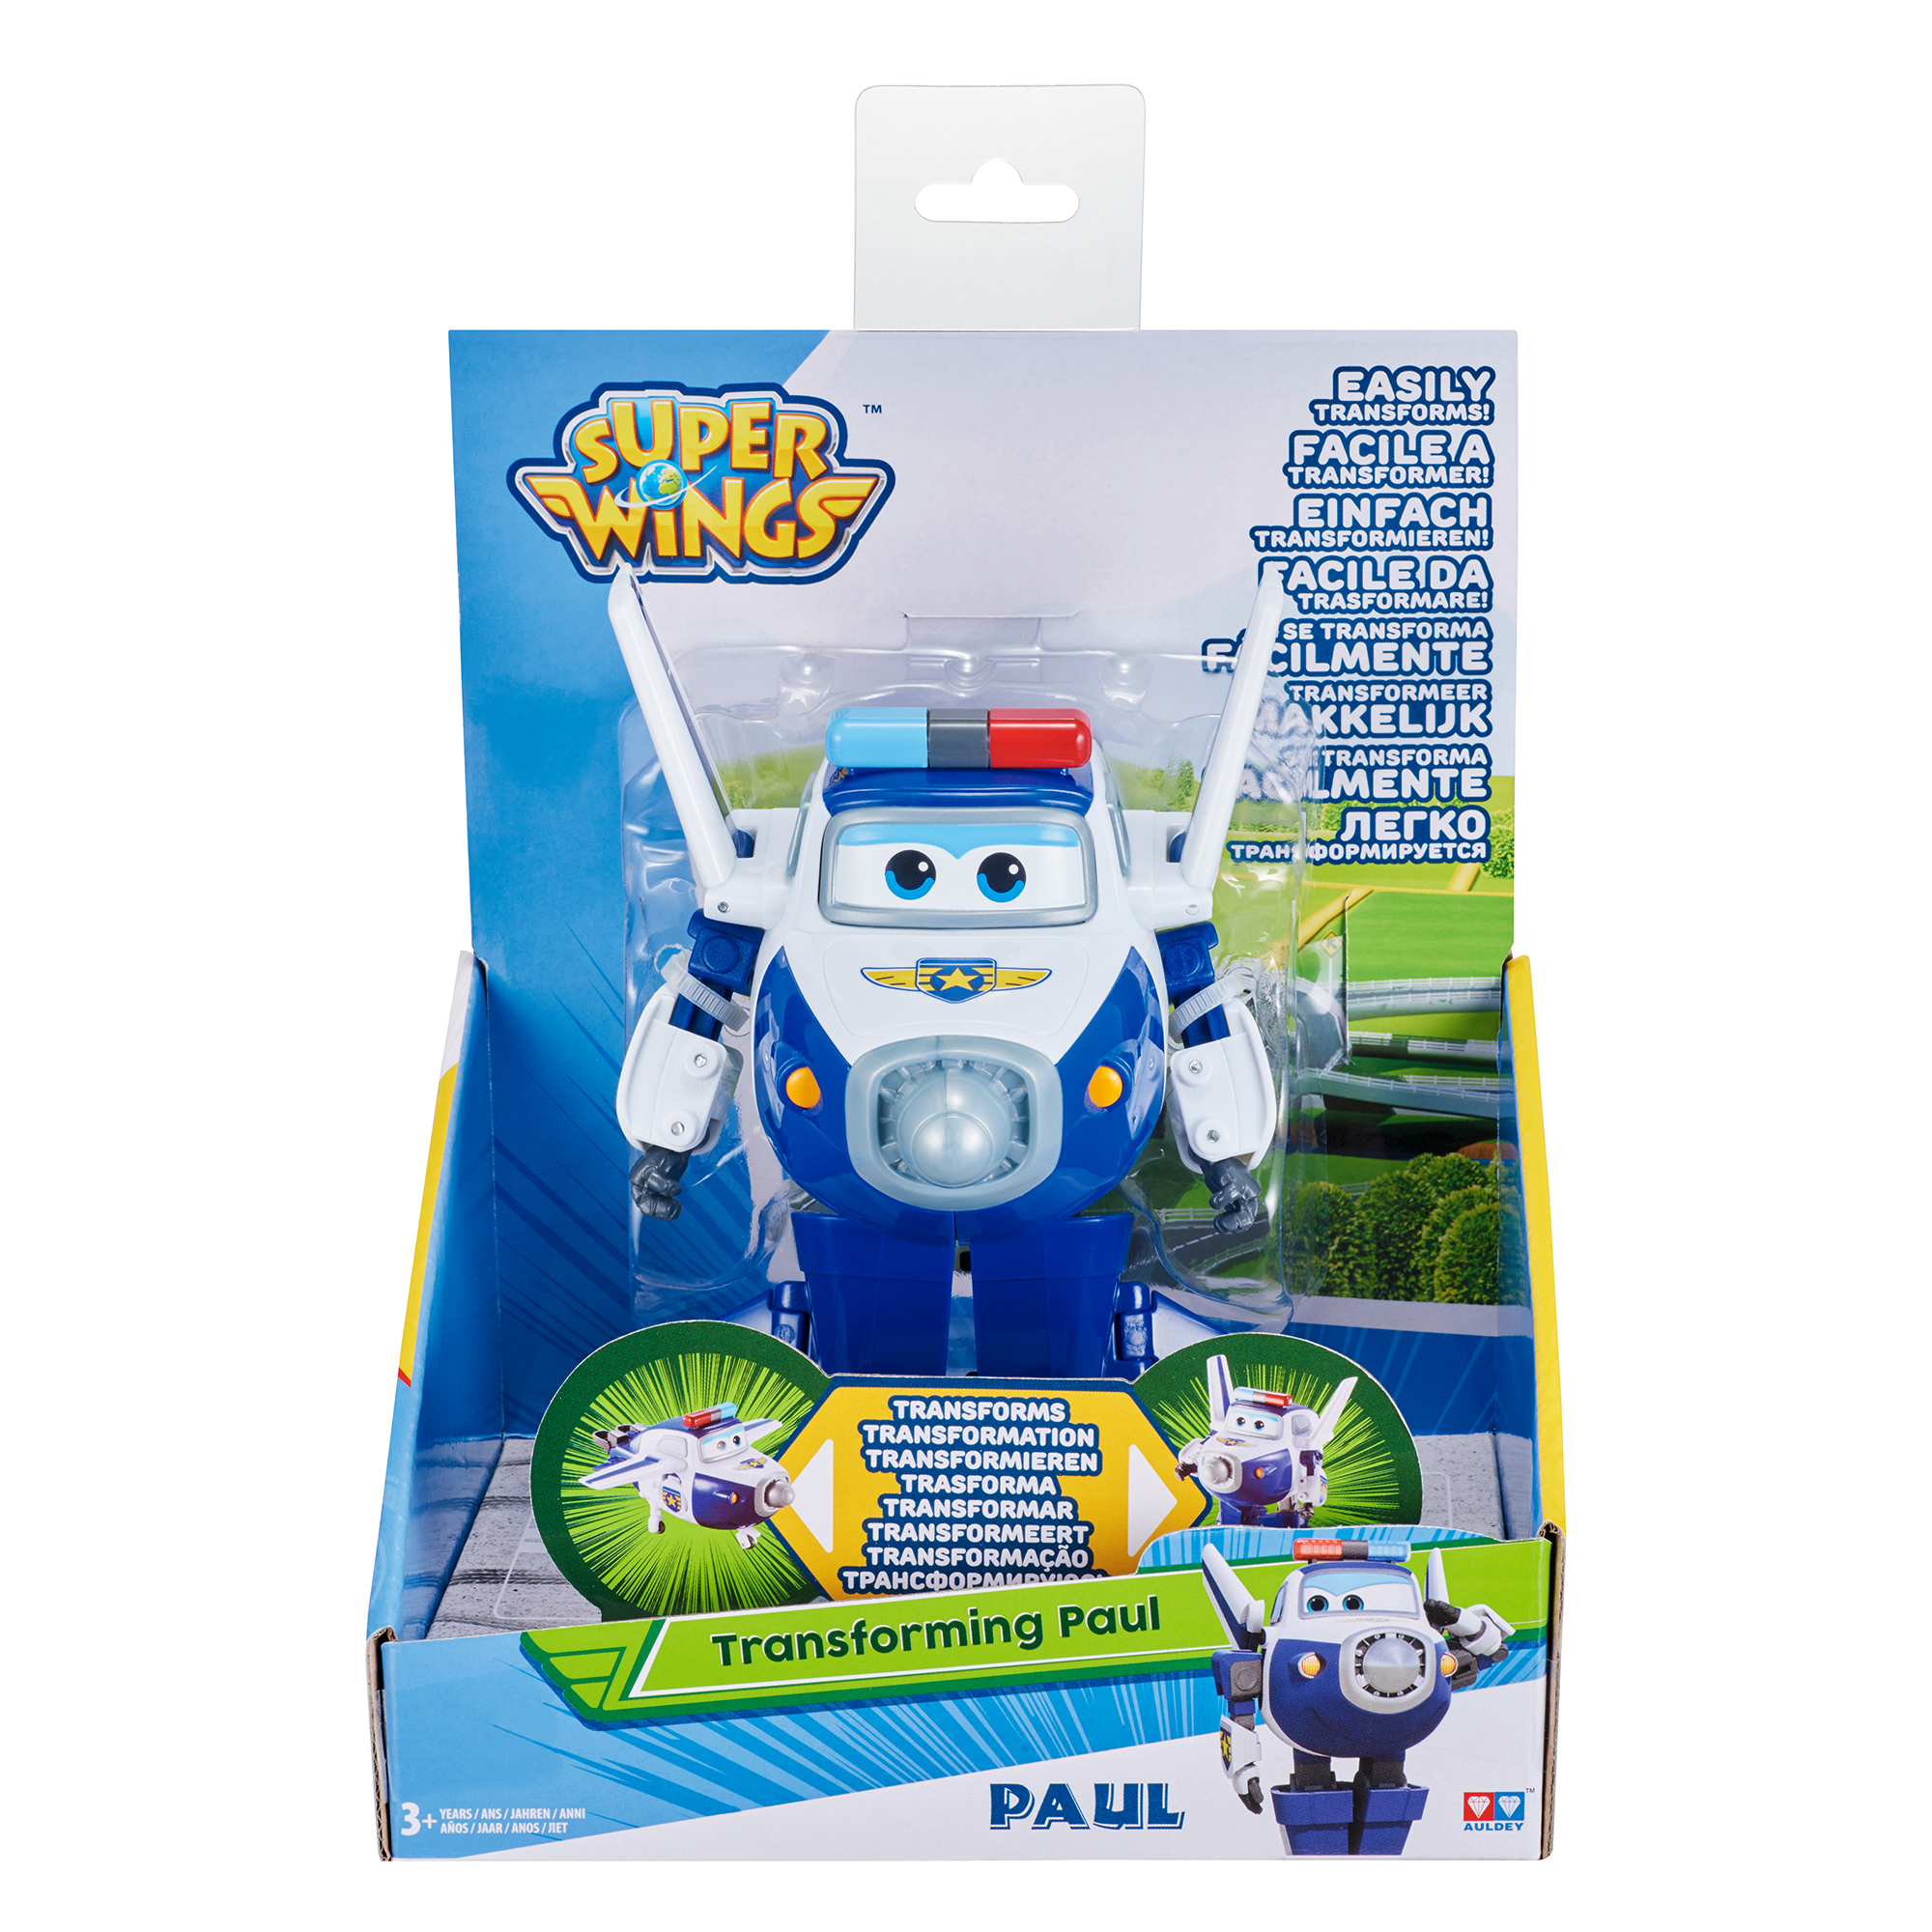 Super Wings Transforming Paul